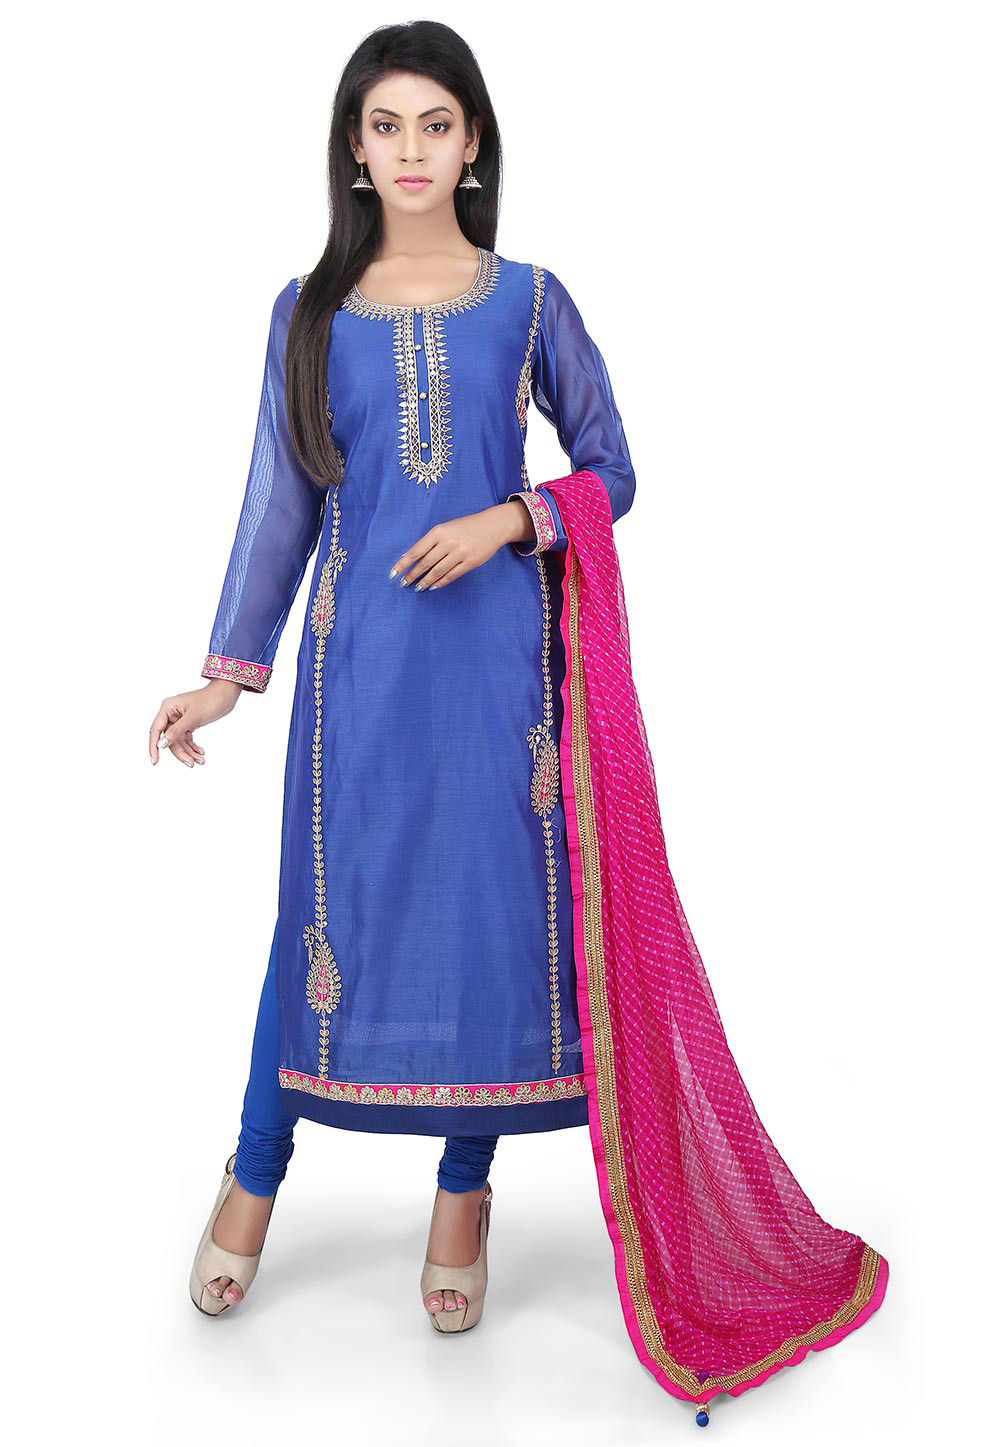 Hand Embroidered Chanderi Cotton Straight Suit in Royal Blue